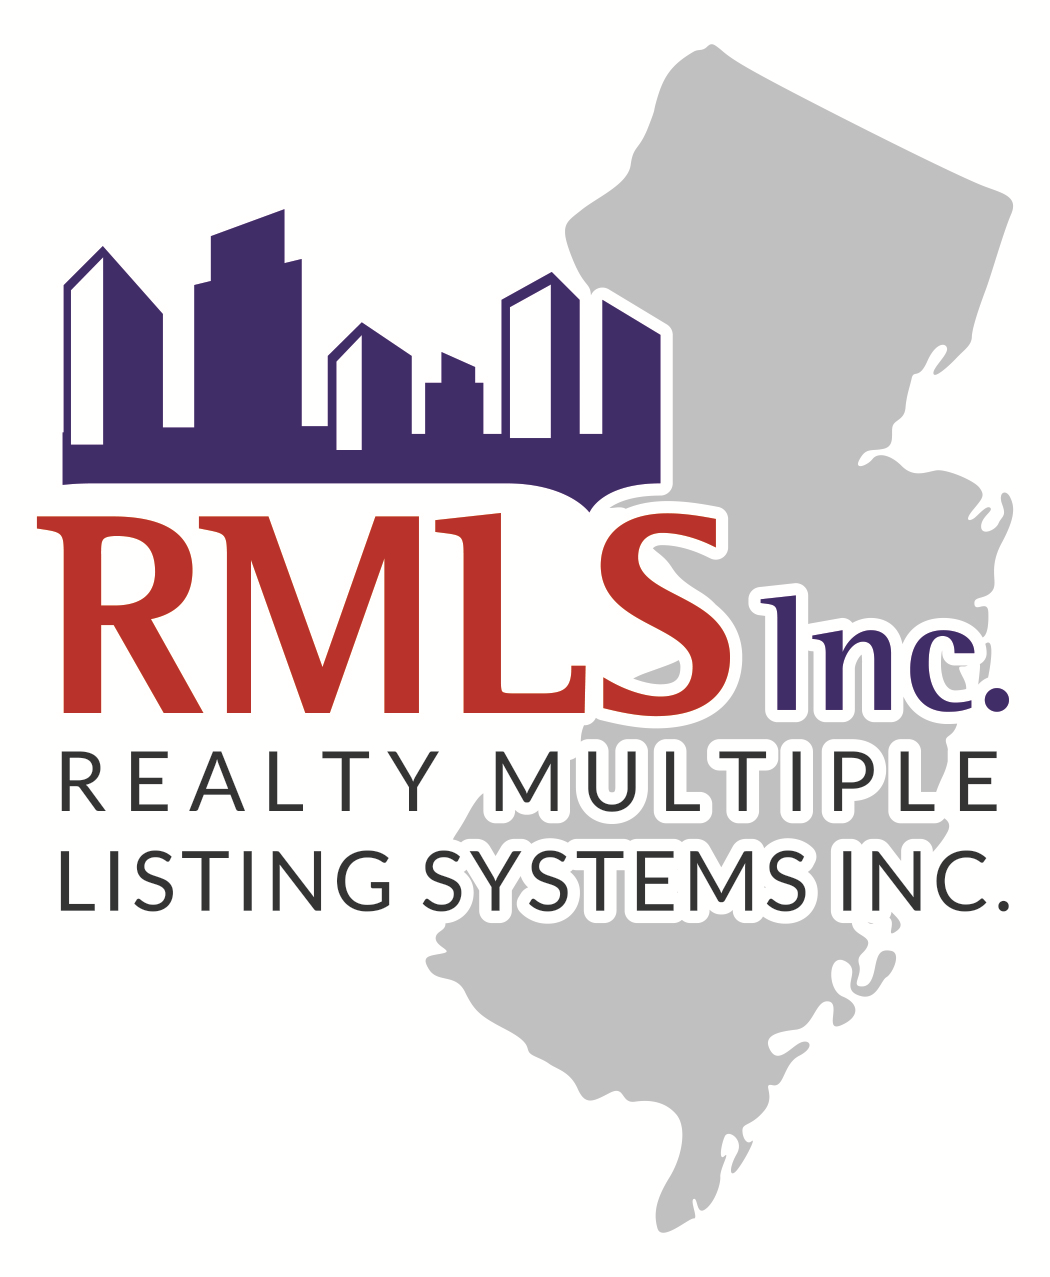 www.mlsguide.com: Contact agent about this listing